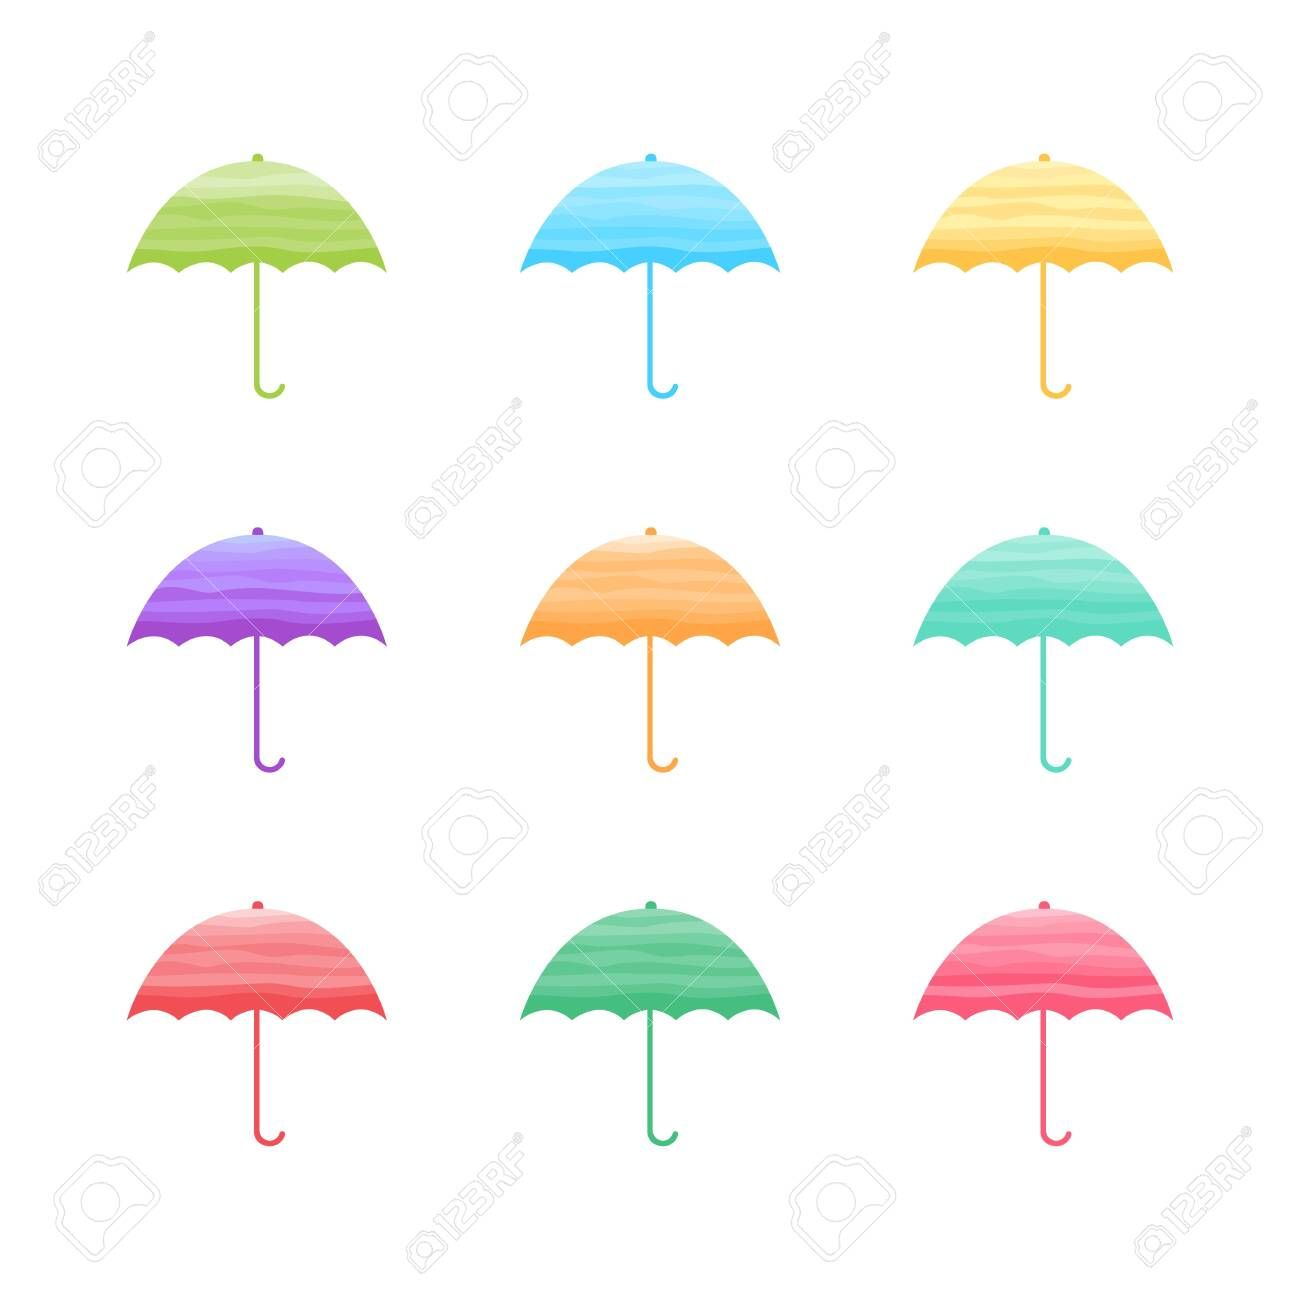 Set of cute umbrellas isolated on white background. vector illustration , #Aff, #umbrellas, #isolated, #Set, #cute, #vector #cuteumbrellas